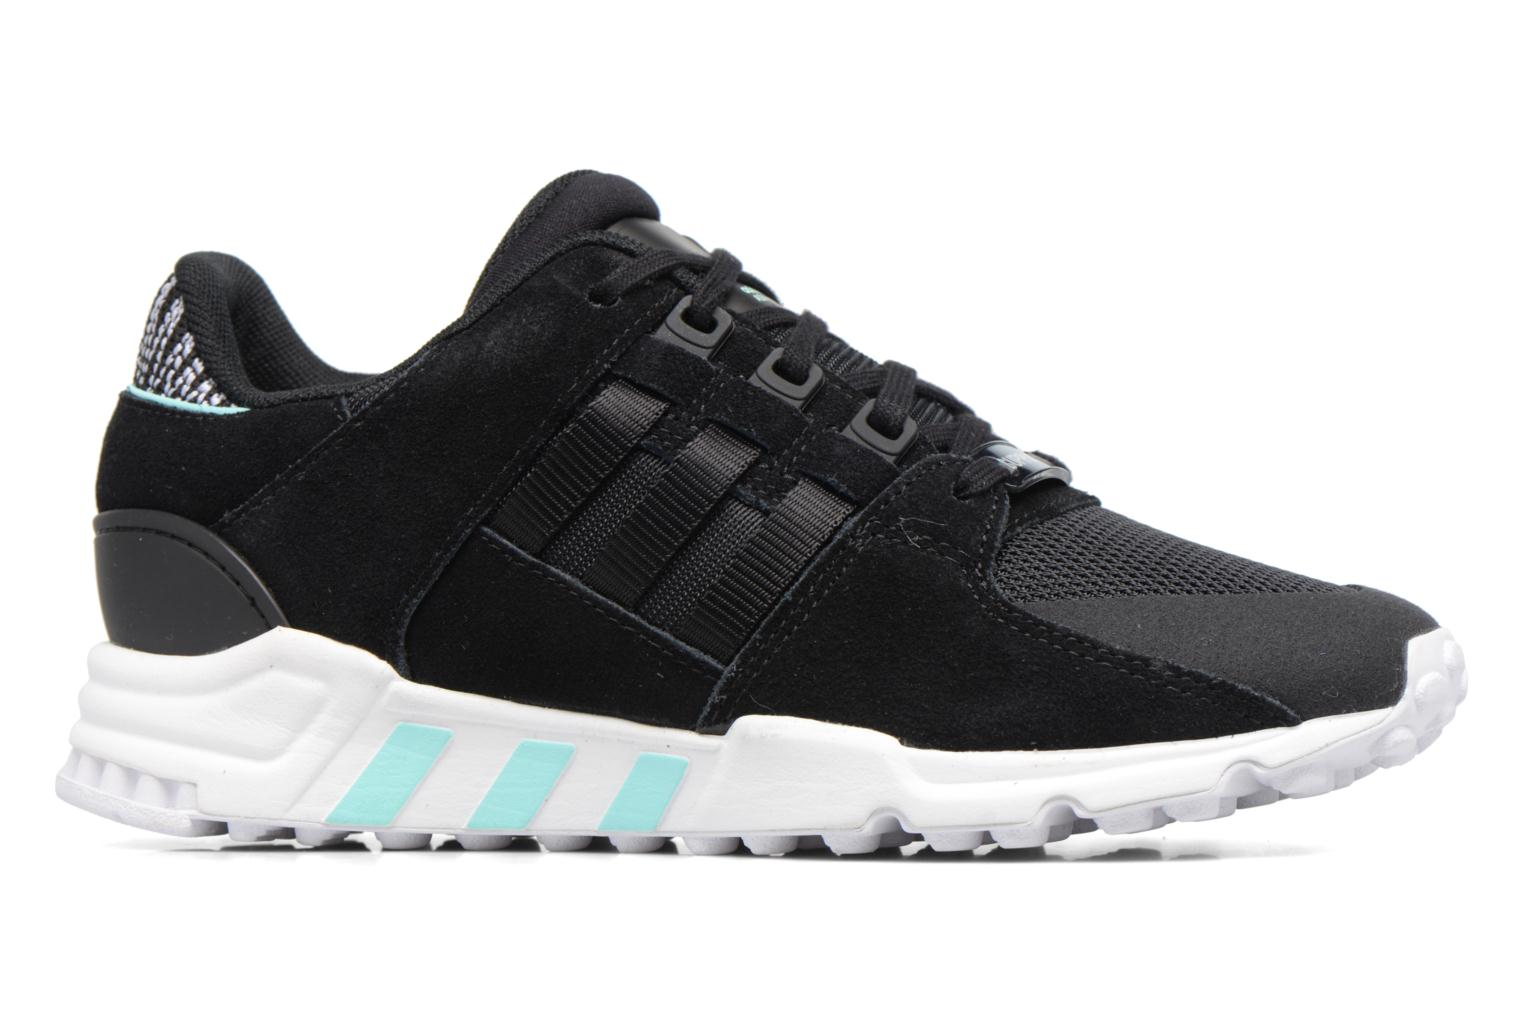 Rubmys/Rubmys/Blacry Adidas Originals Eqt Support Rf W (Bordeaux)